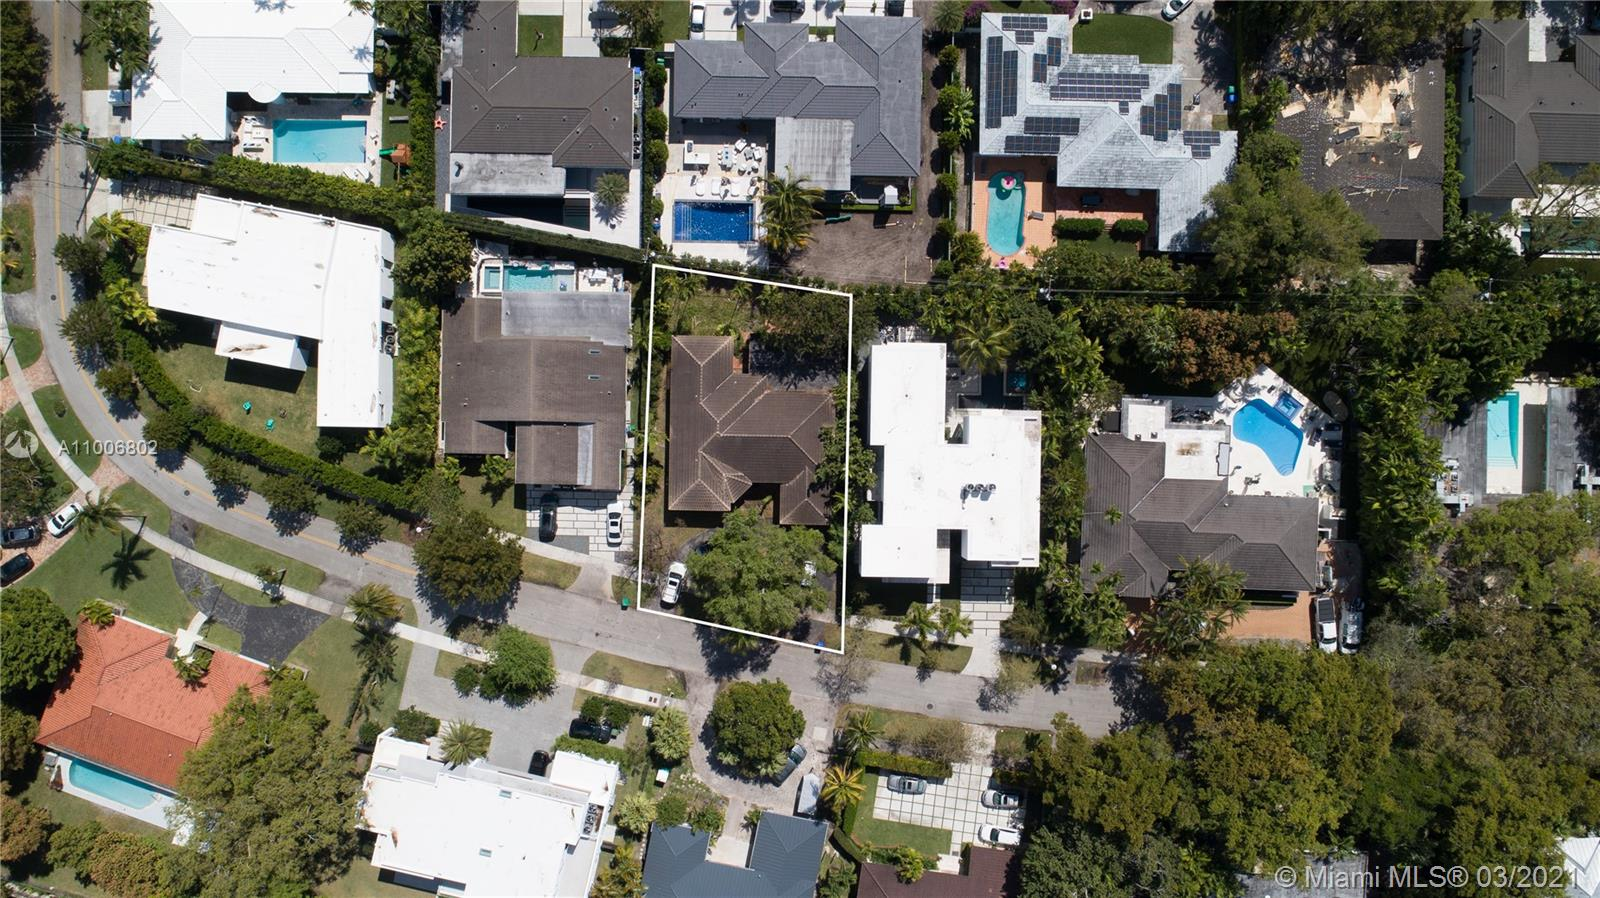 Build your dream home or invest for the future on this 8,951 sq. foot lot perfectly situated in Miami's highly sought after Bay Heights community. The lot dimensions are 80 feet wide and 117 feet in depth and the current structure will soon be demolished per owner and ready to build on. Bay Heights is a quiet but yet central 24-hr patrolled community in Coconut Grove across from Vizcaya Museum and Gardens and a short commute to Brickell, Downtown, the park, beaches, Grove village, Regatta Park and Coral Gables. Adjacent modern home is also available for $4.9M an amazing opportunity to combine two properties and maximize land and privacy.